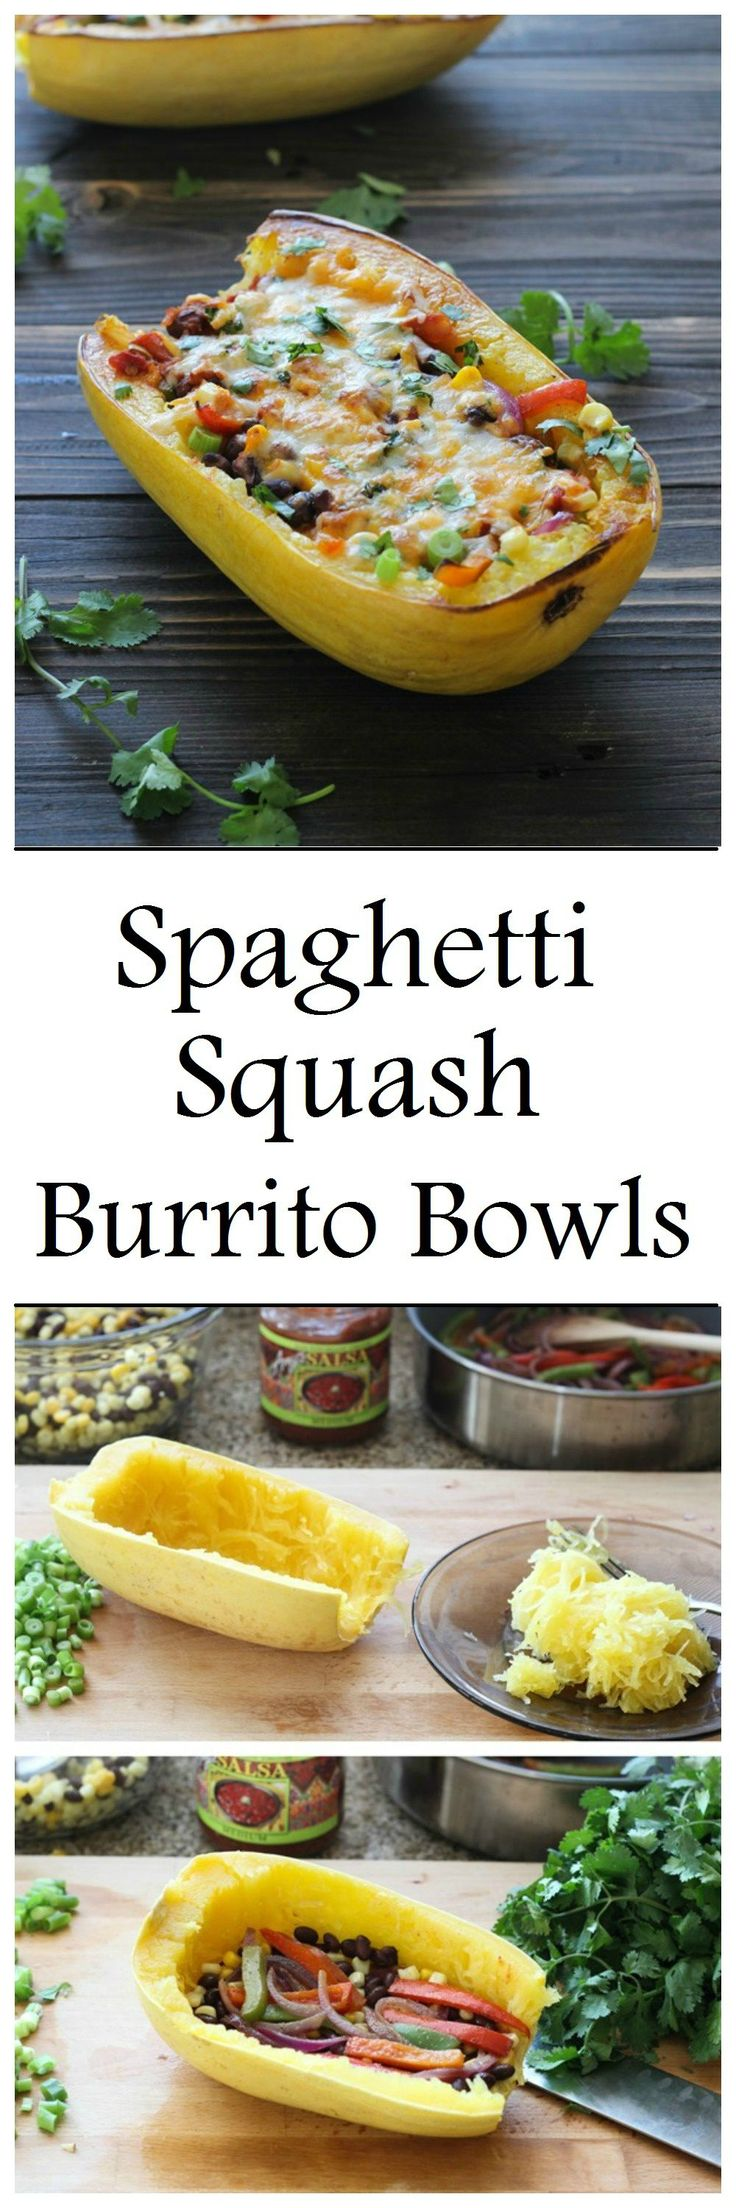 Spaghetti Squash Burrito Bowls- a healthy meal that's easy and delicious! #lowcarb #cleaneating